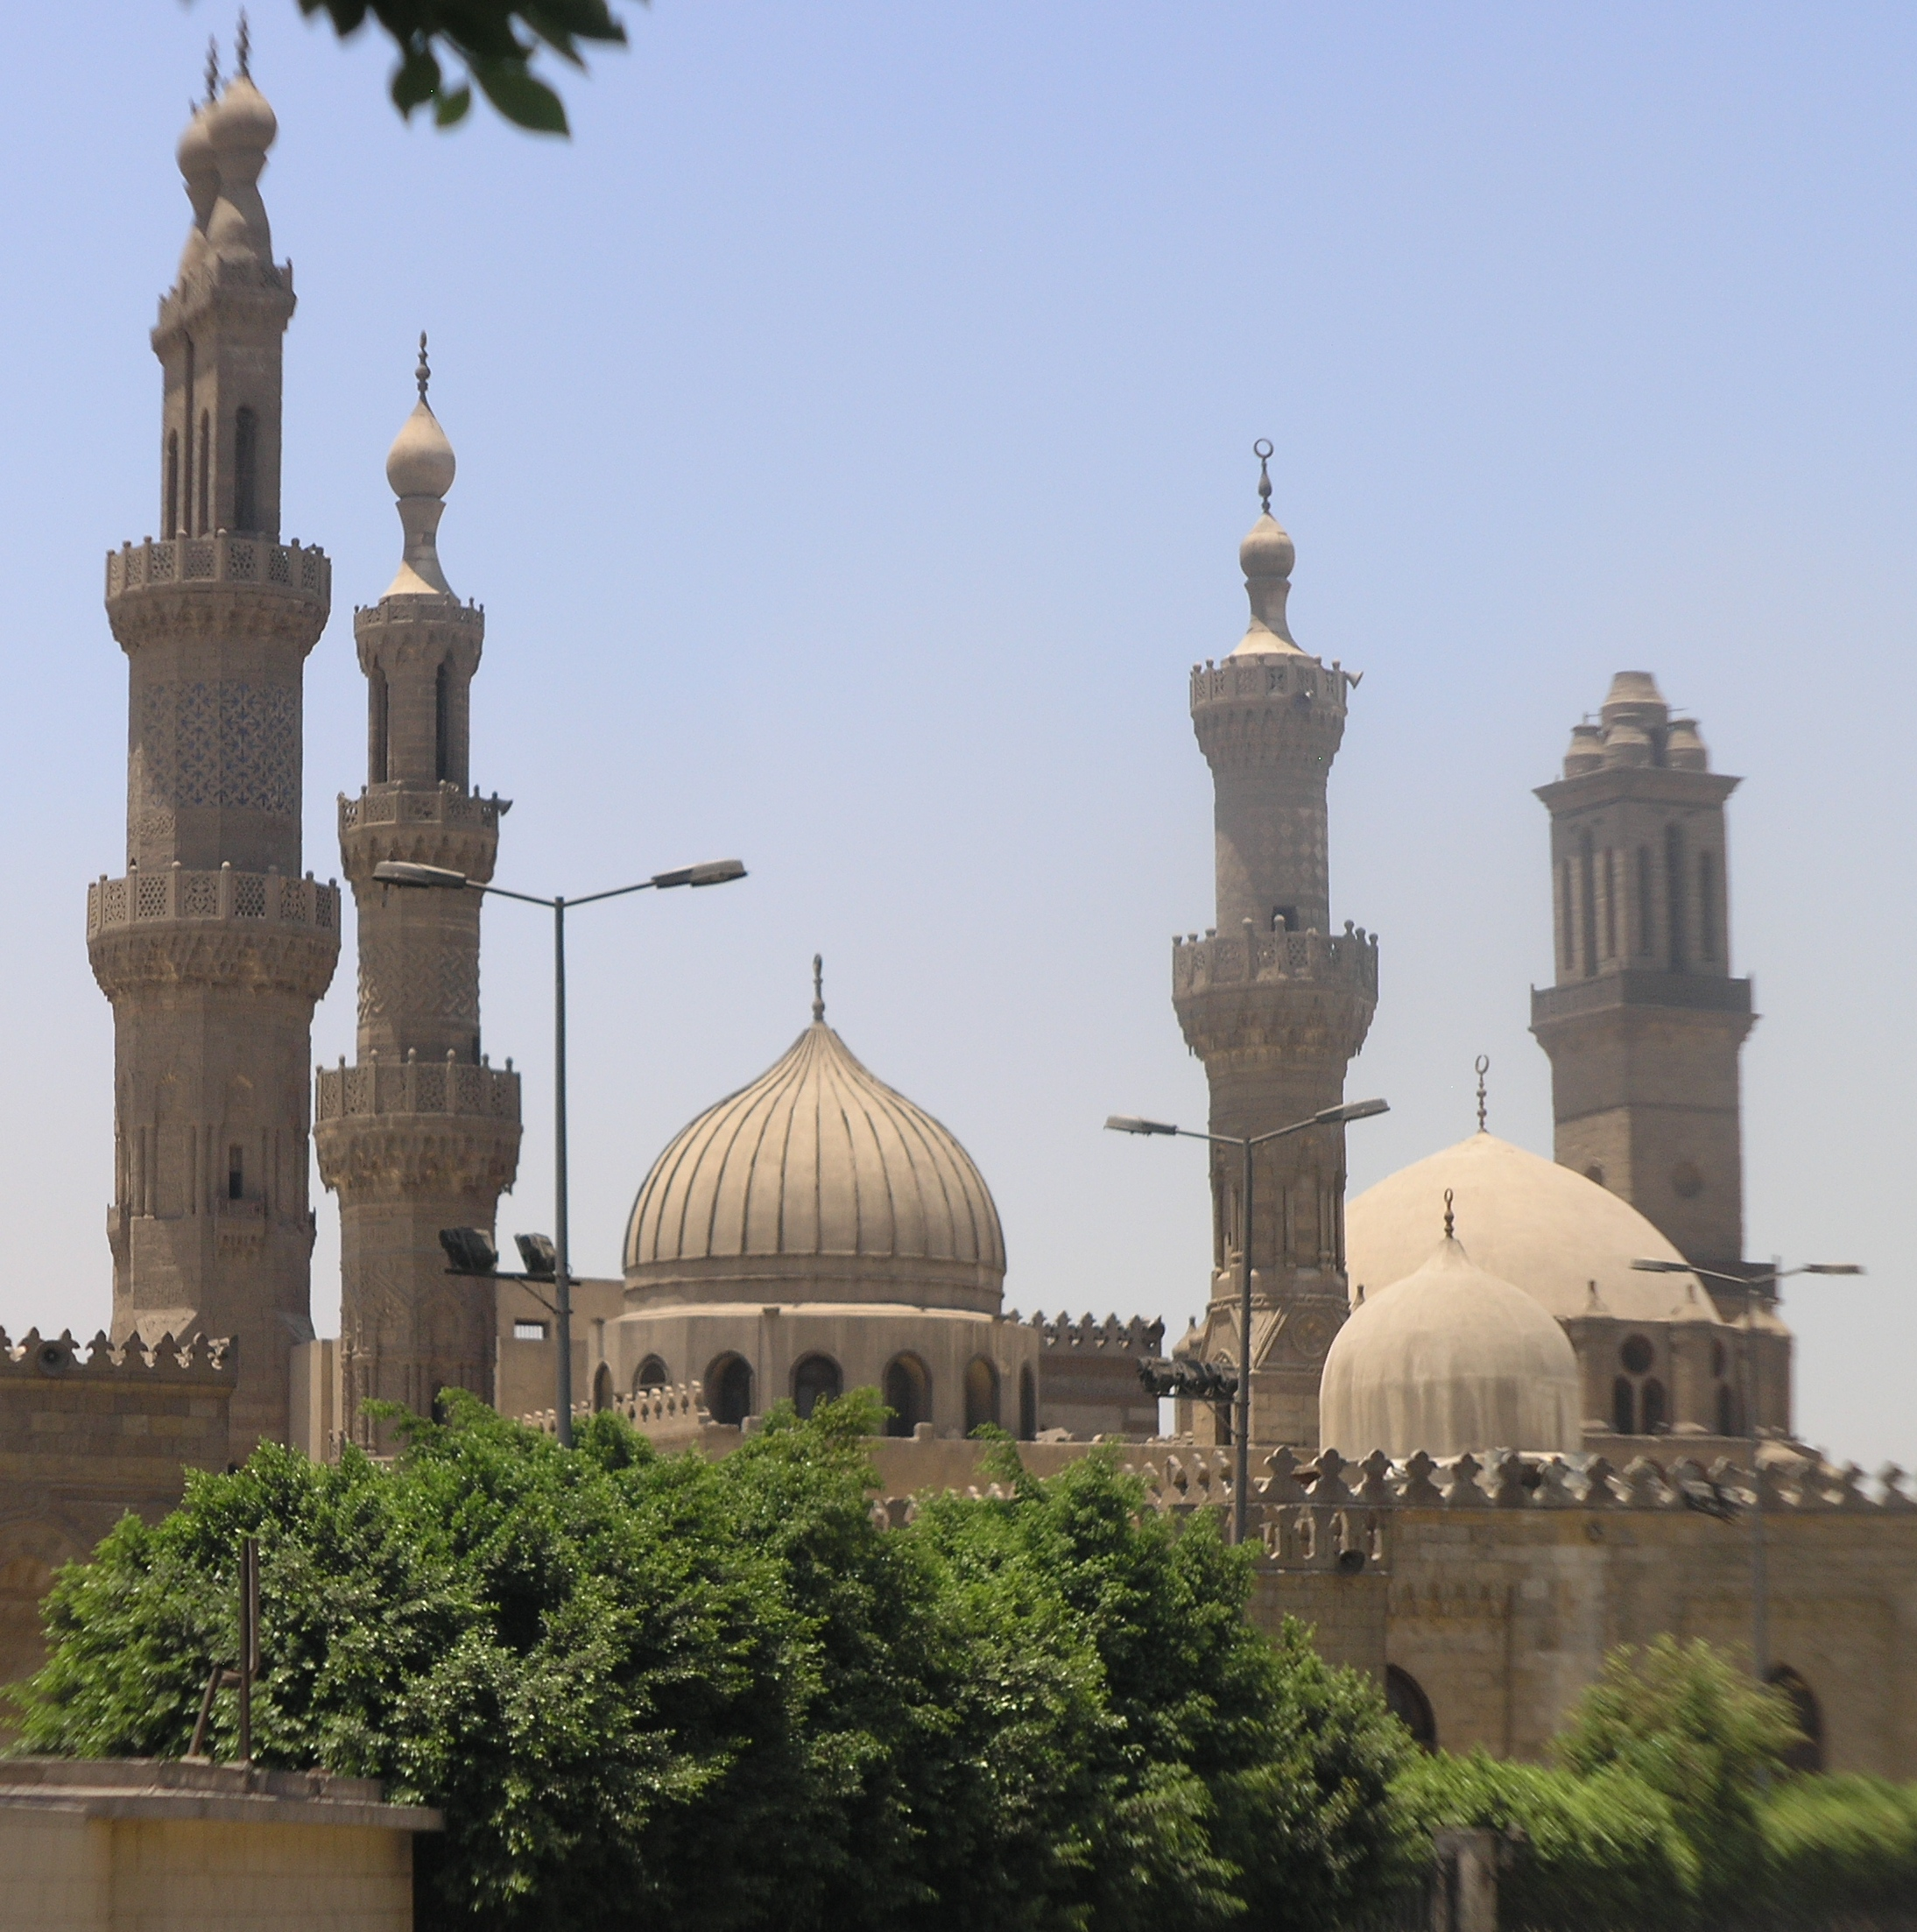 Al-Azhar Mosque - Wikipedia, the free encyclopedia